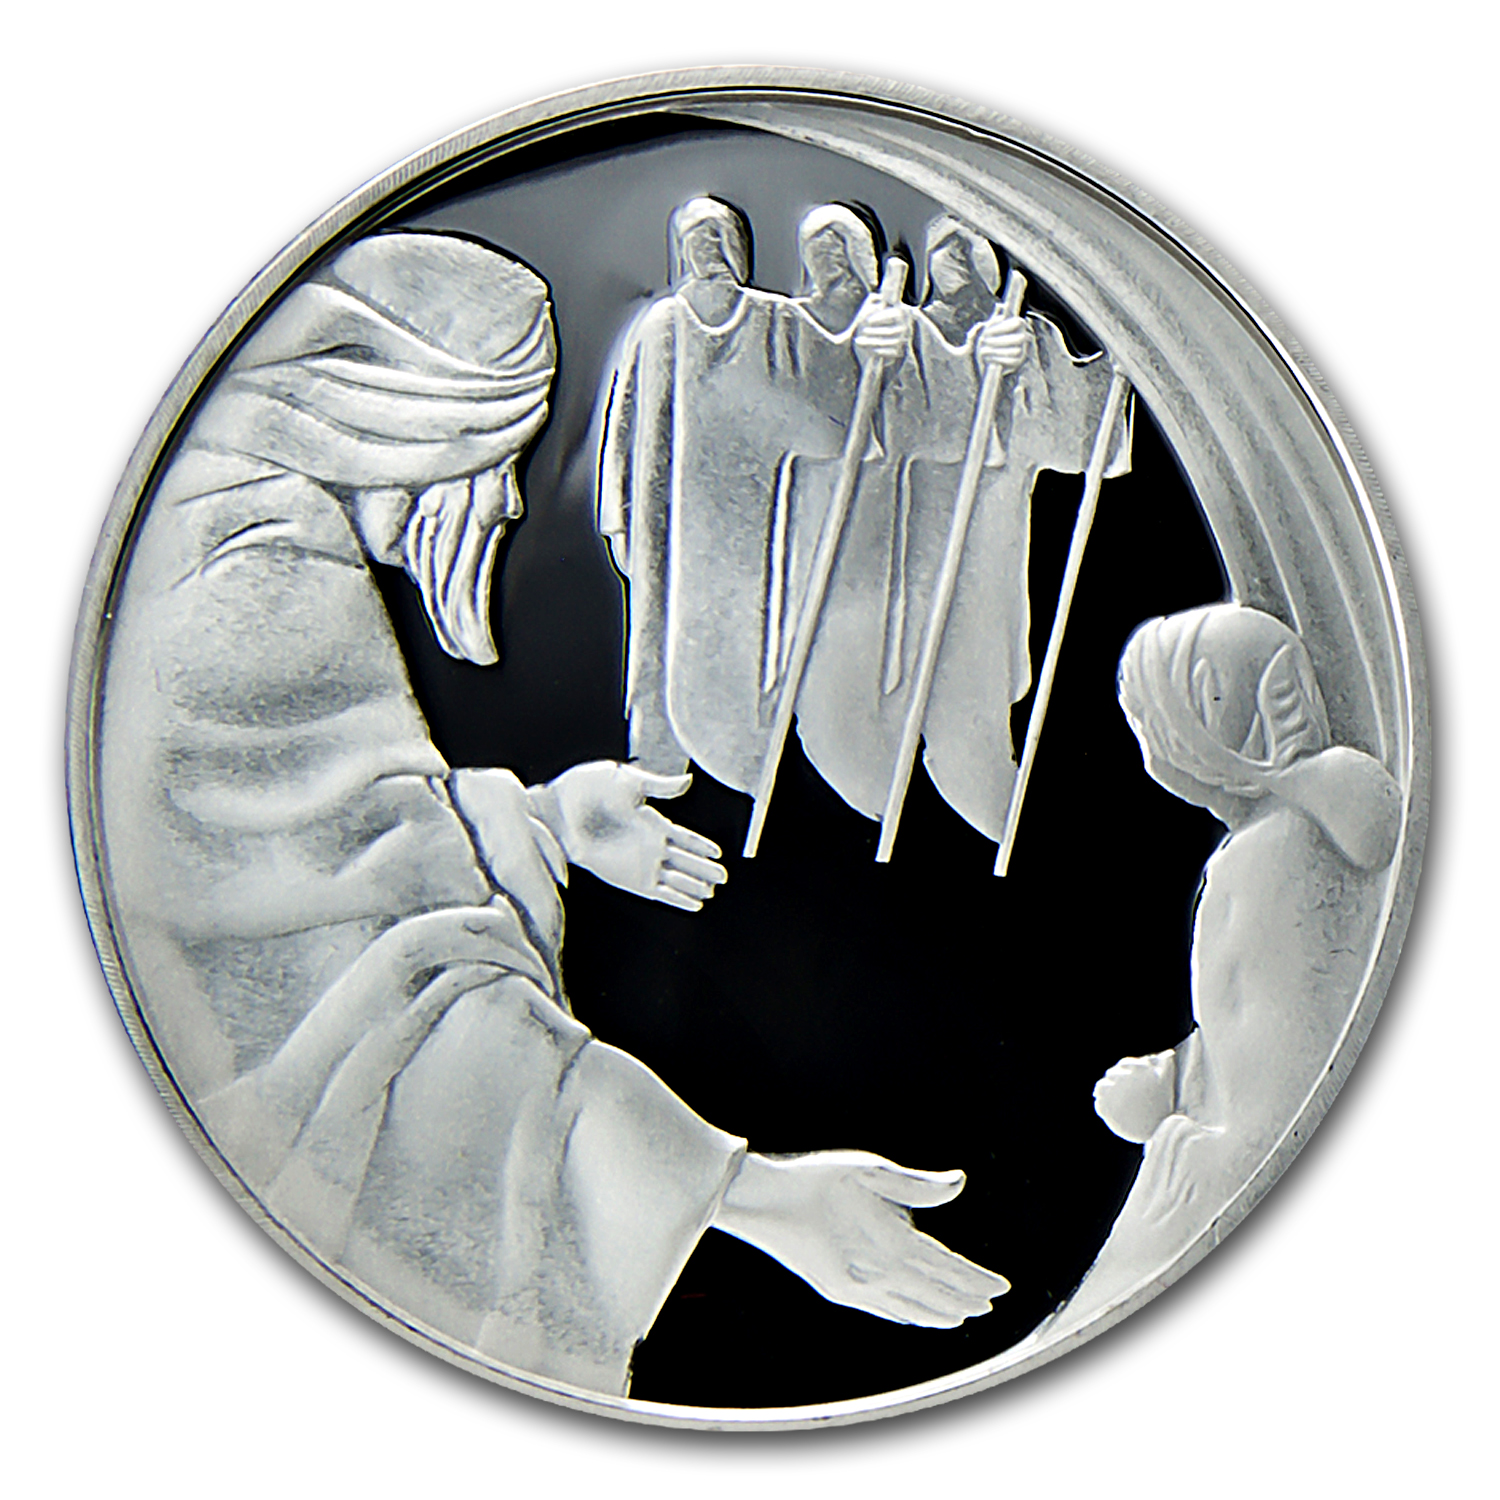 2006 Israel Silver 2 NIS Abraham and the Angels Proof